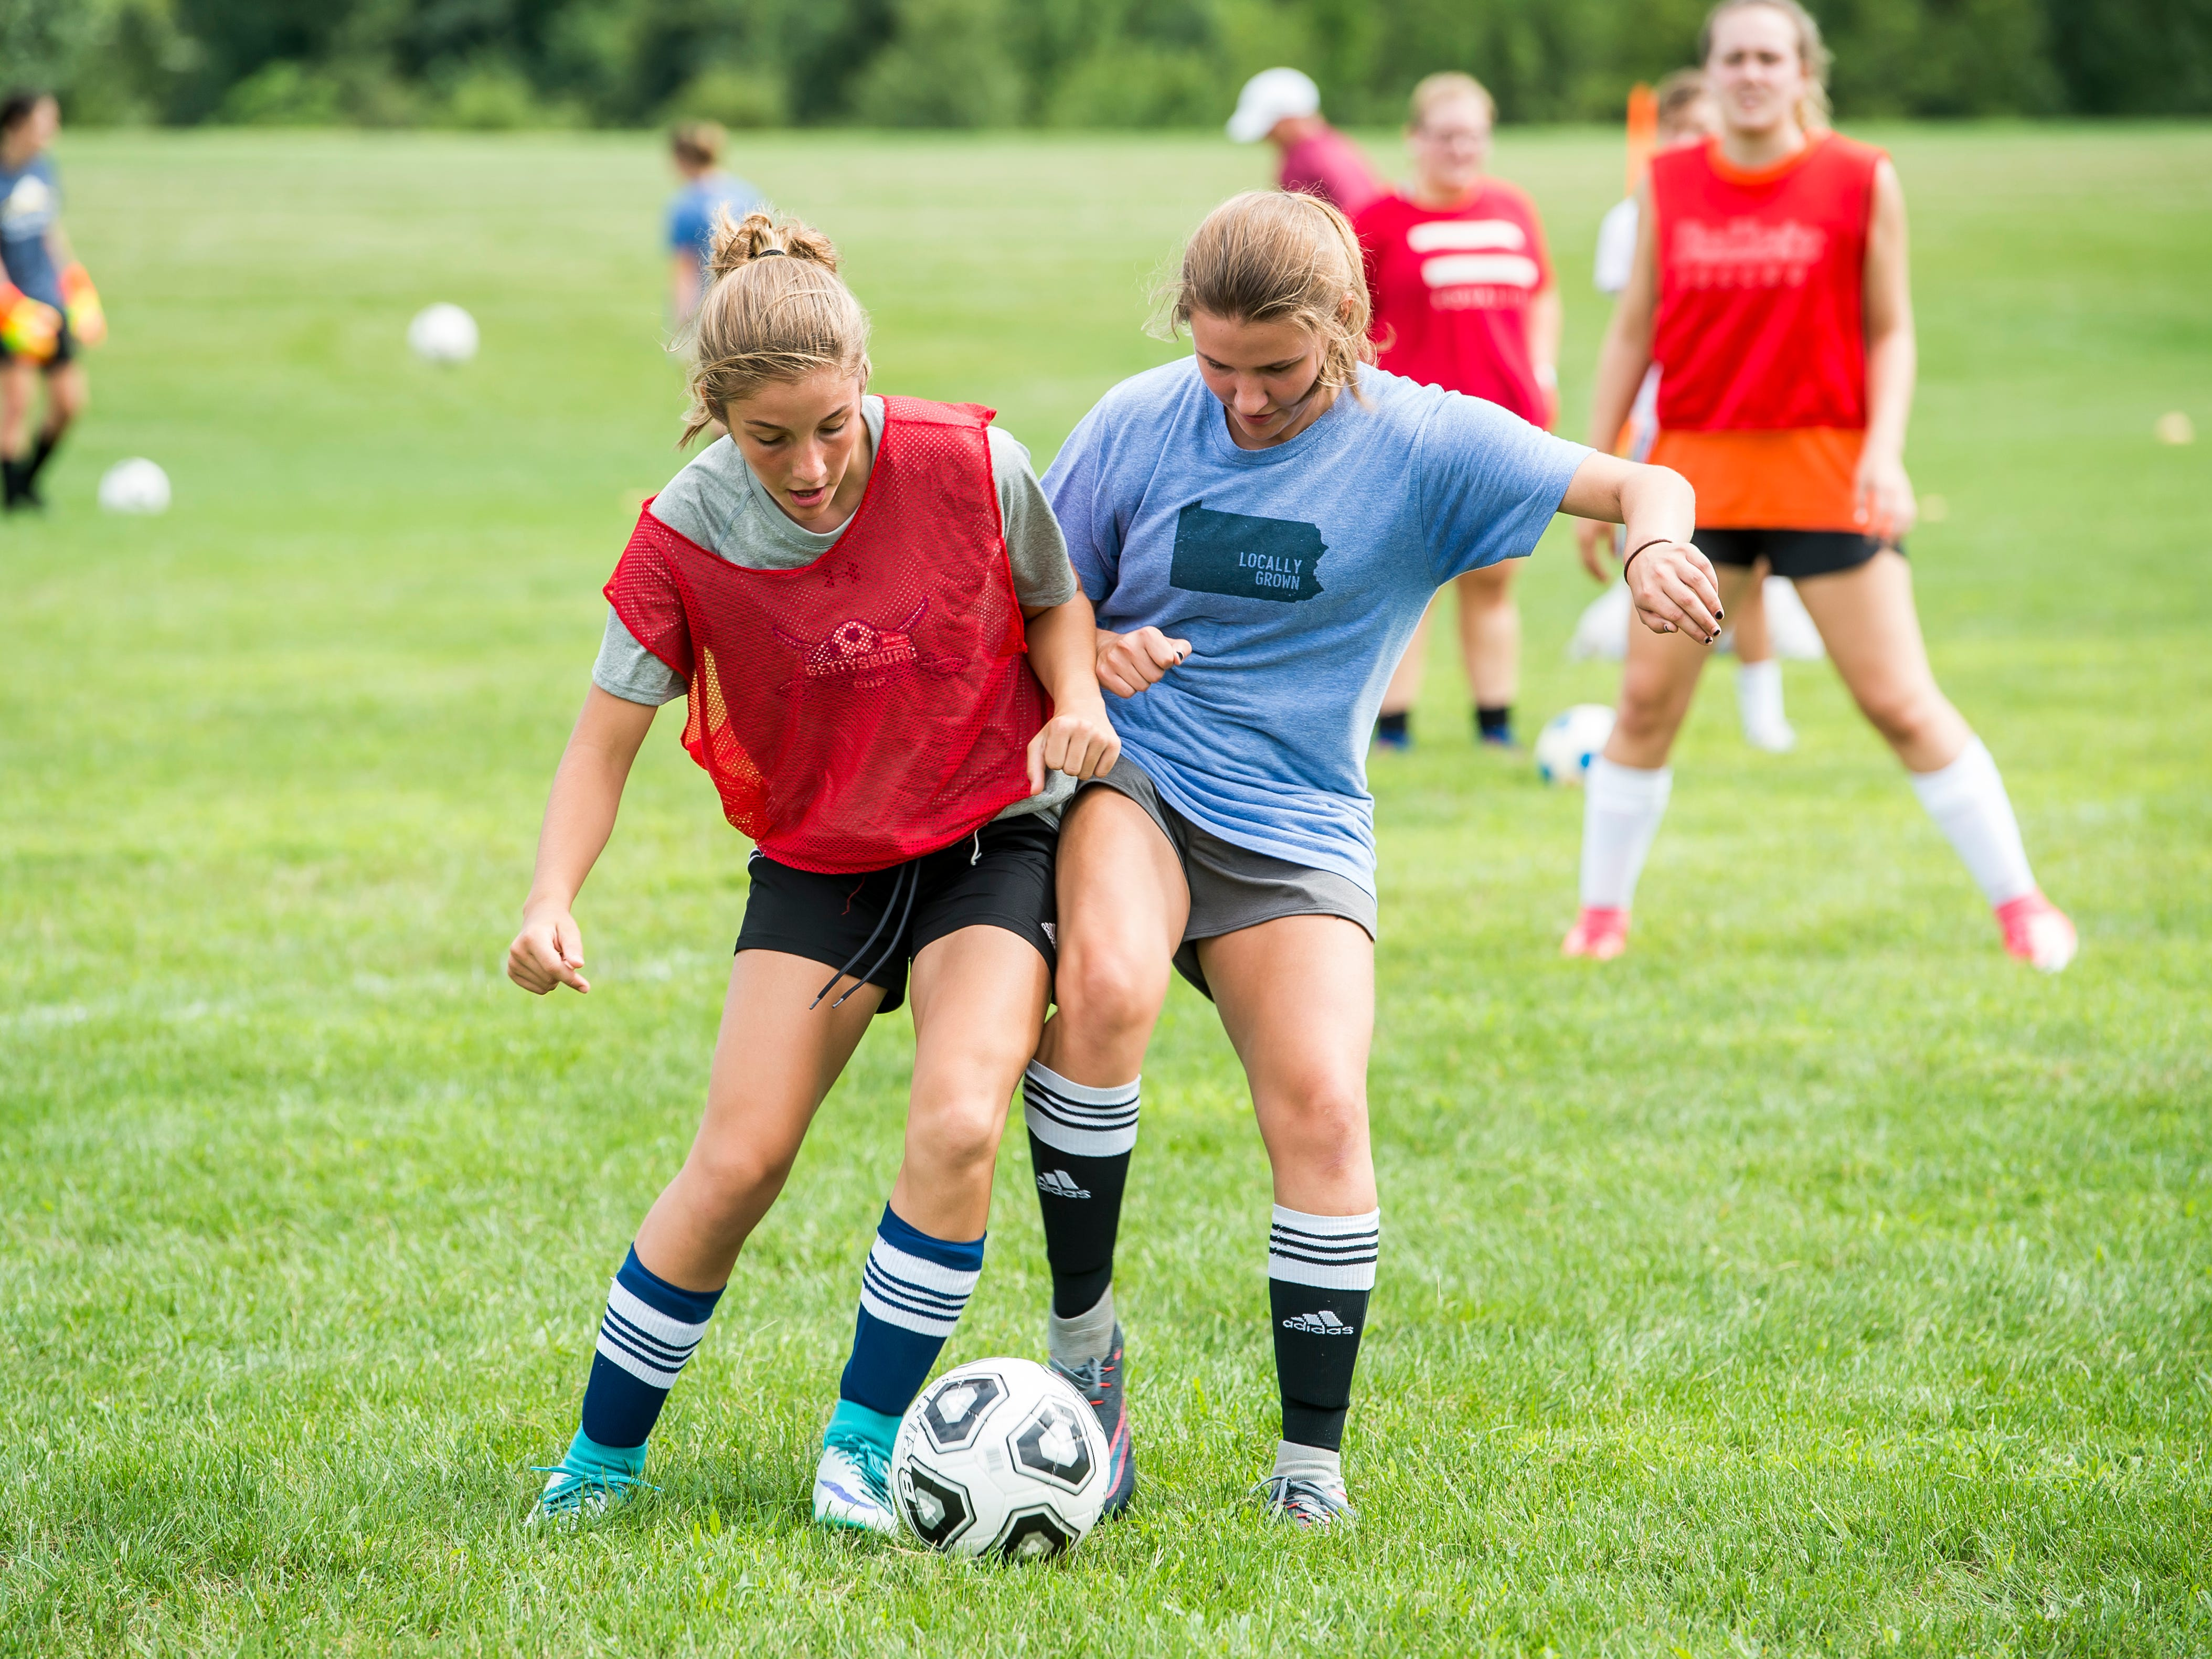 Gettysburg girls soccer players Rachel McKinney, left, and Sam Shafer battle for the ball during the first day of fall sports practice on Monday, August 13, 2018.